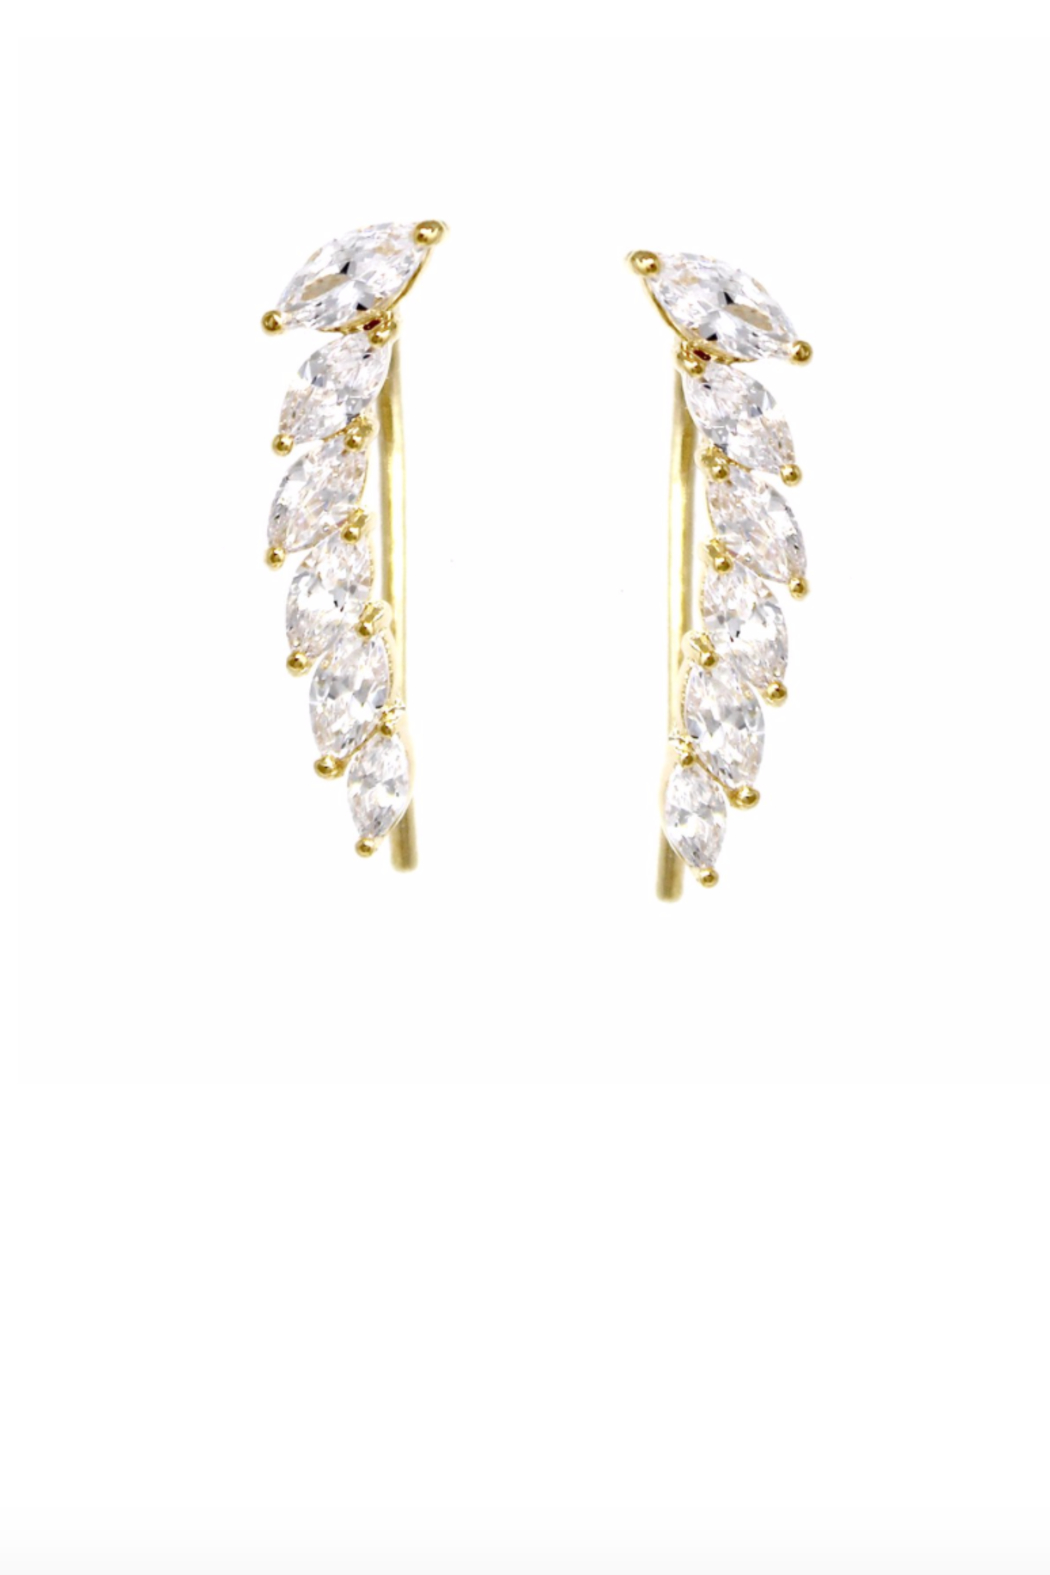 US Jewelry House Pave Gold Dipped Earrings - Main Image